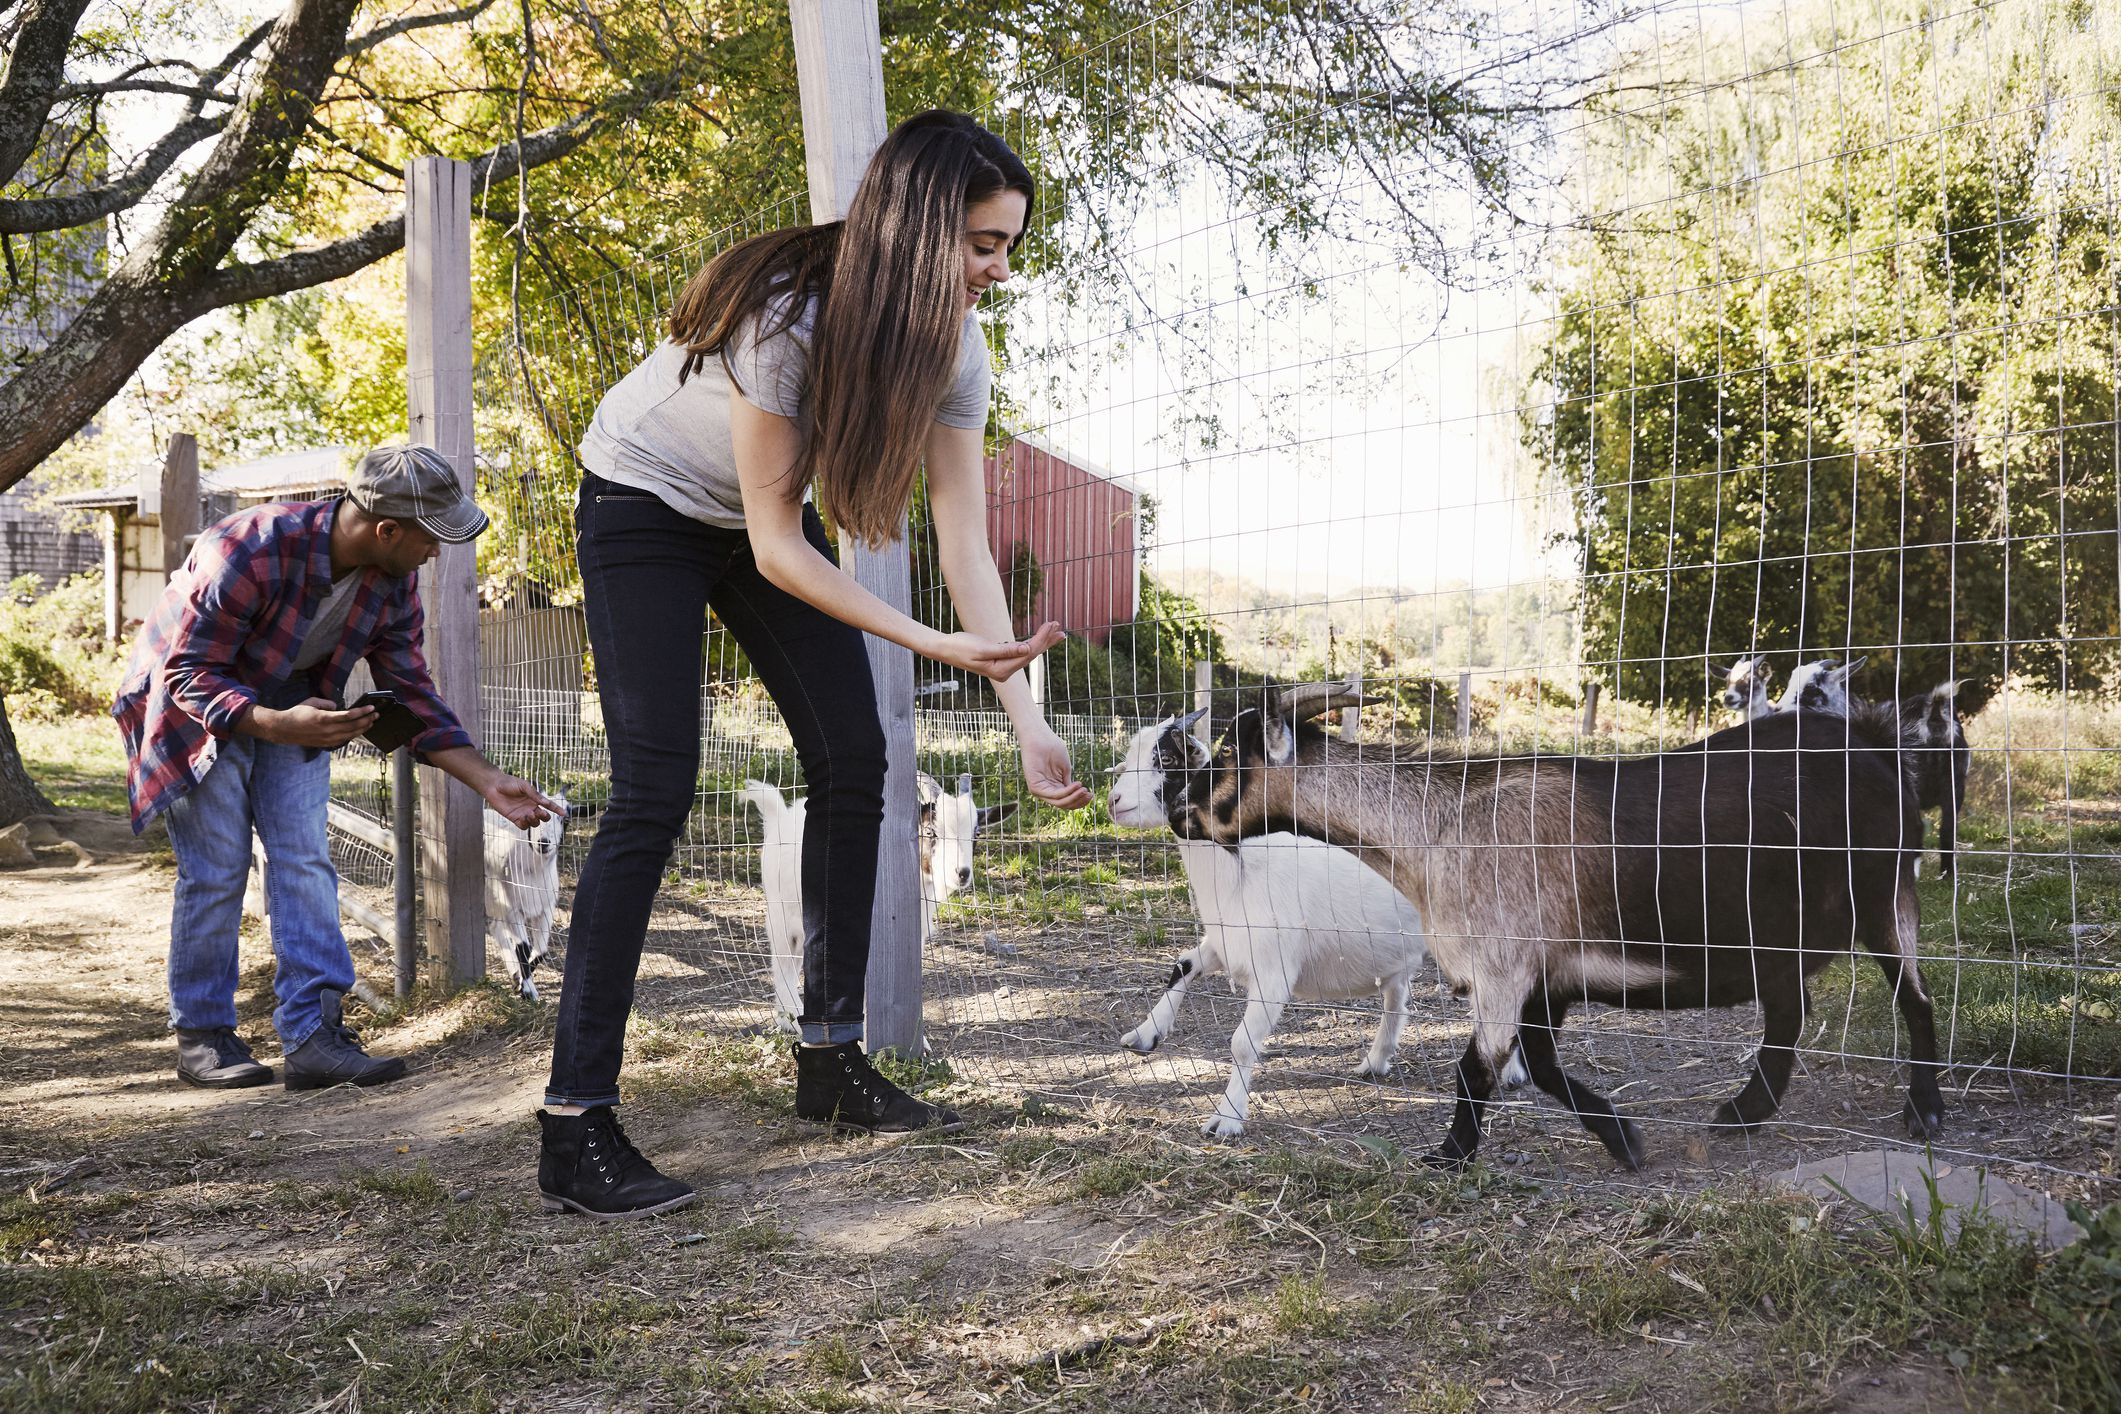 Woman and man feeding goats in a small farm